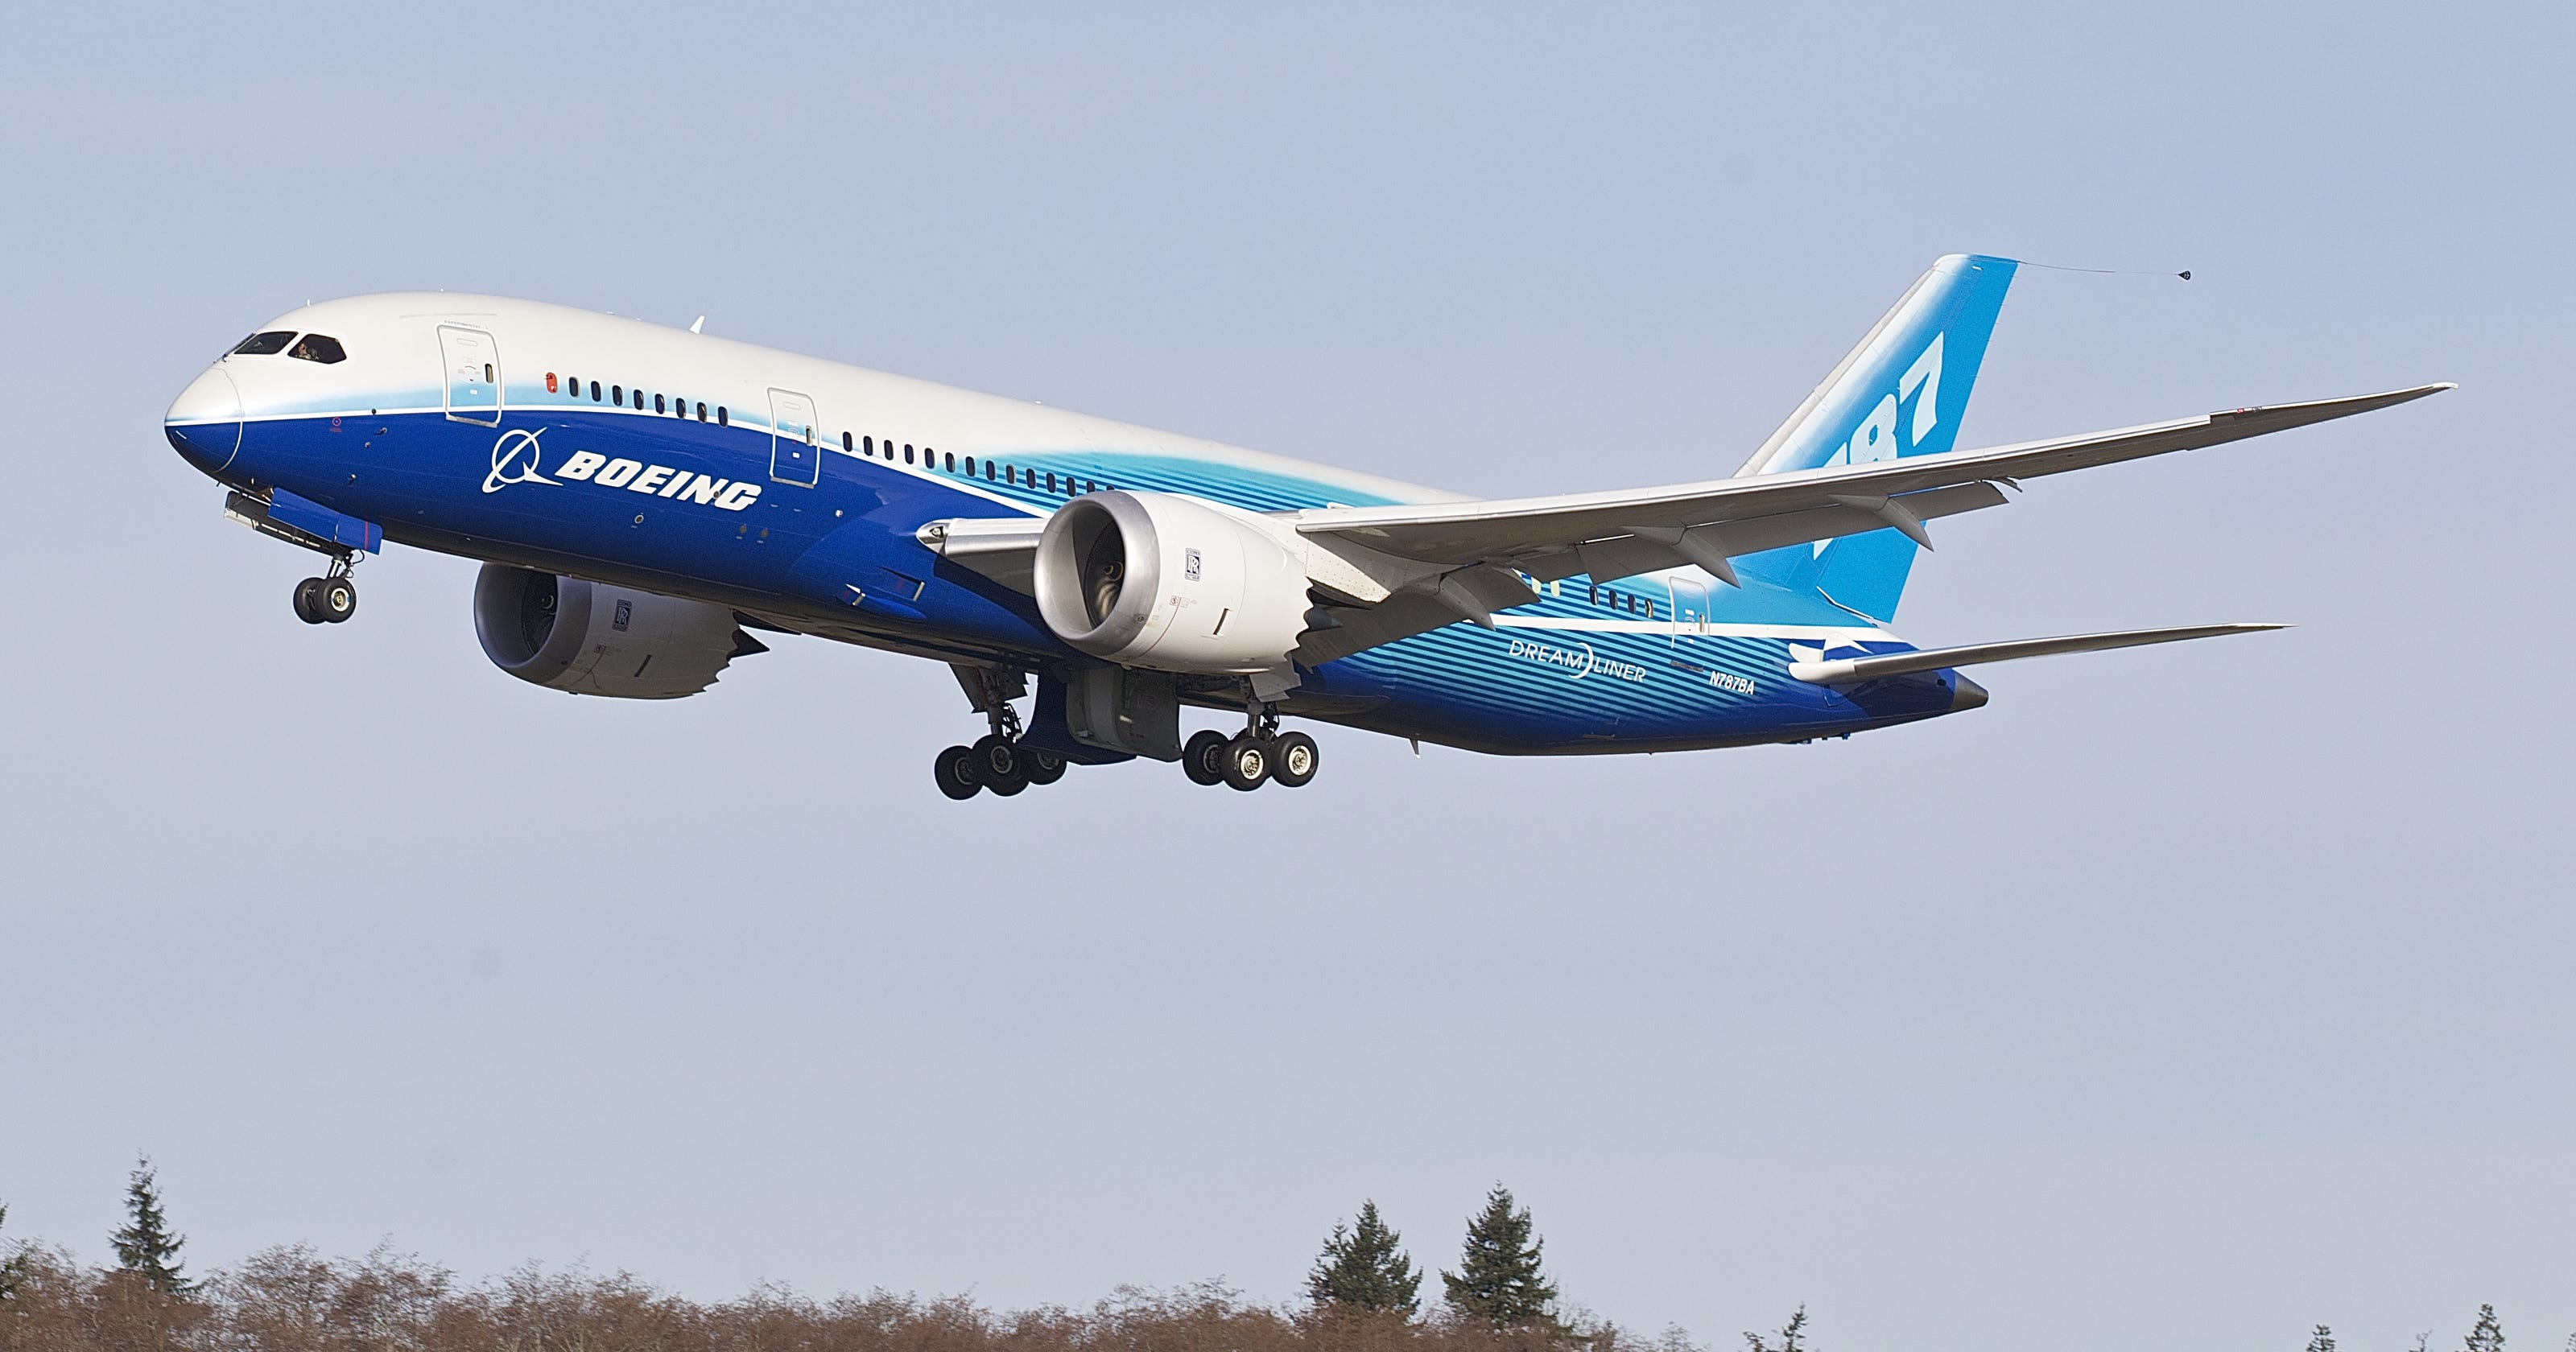 boeing guideline Sitemap streamlining we are in the process of streamlining our technical report collection sitemaps and you have tried to use one of the resources that is being.